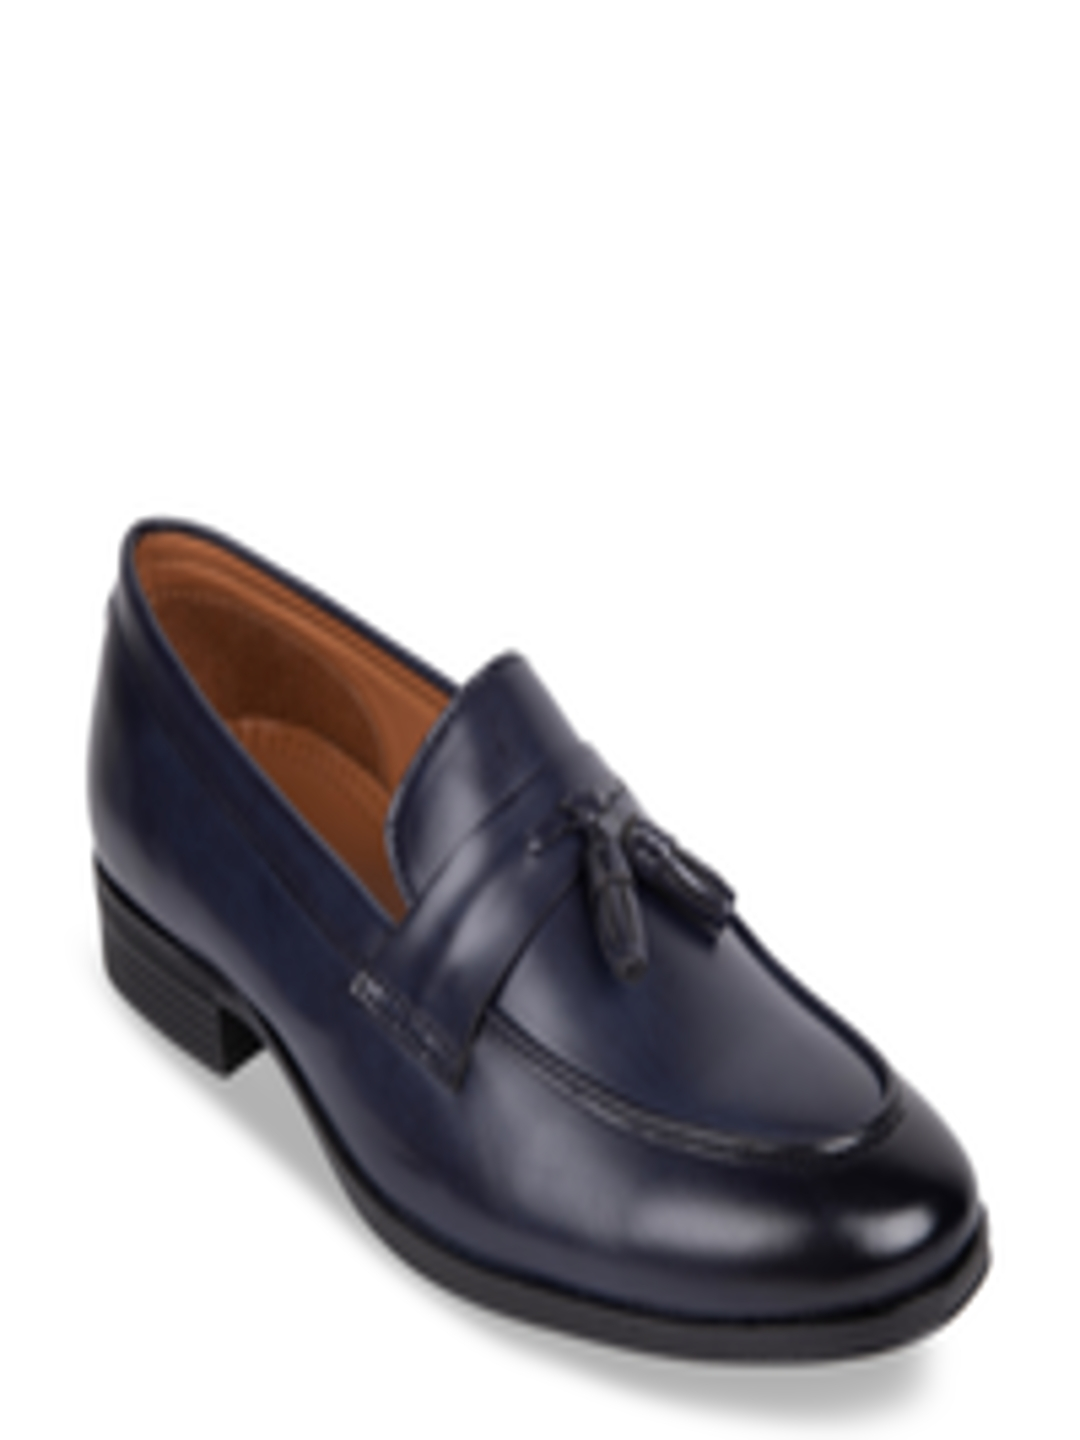 Buy Duke Men Navy Blue Penny Loafers - Casual Shoes for ...